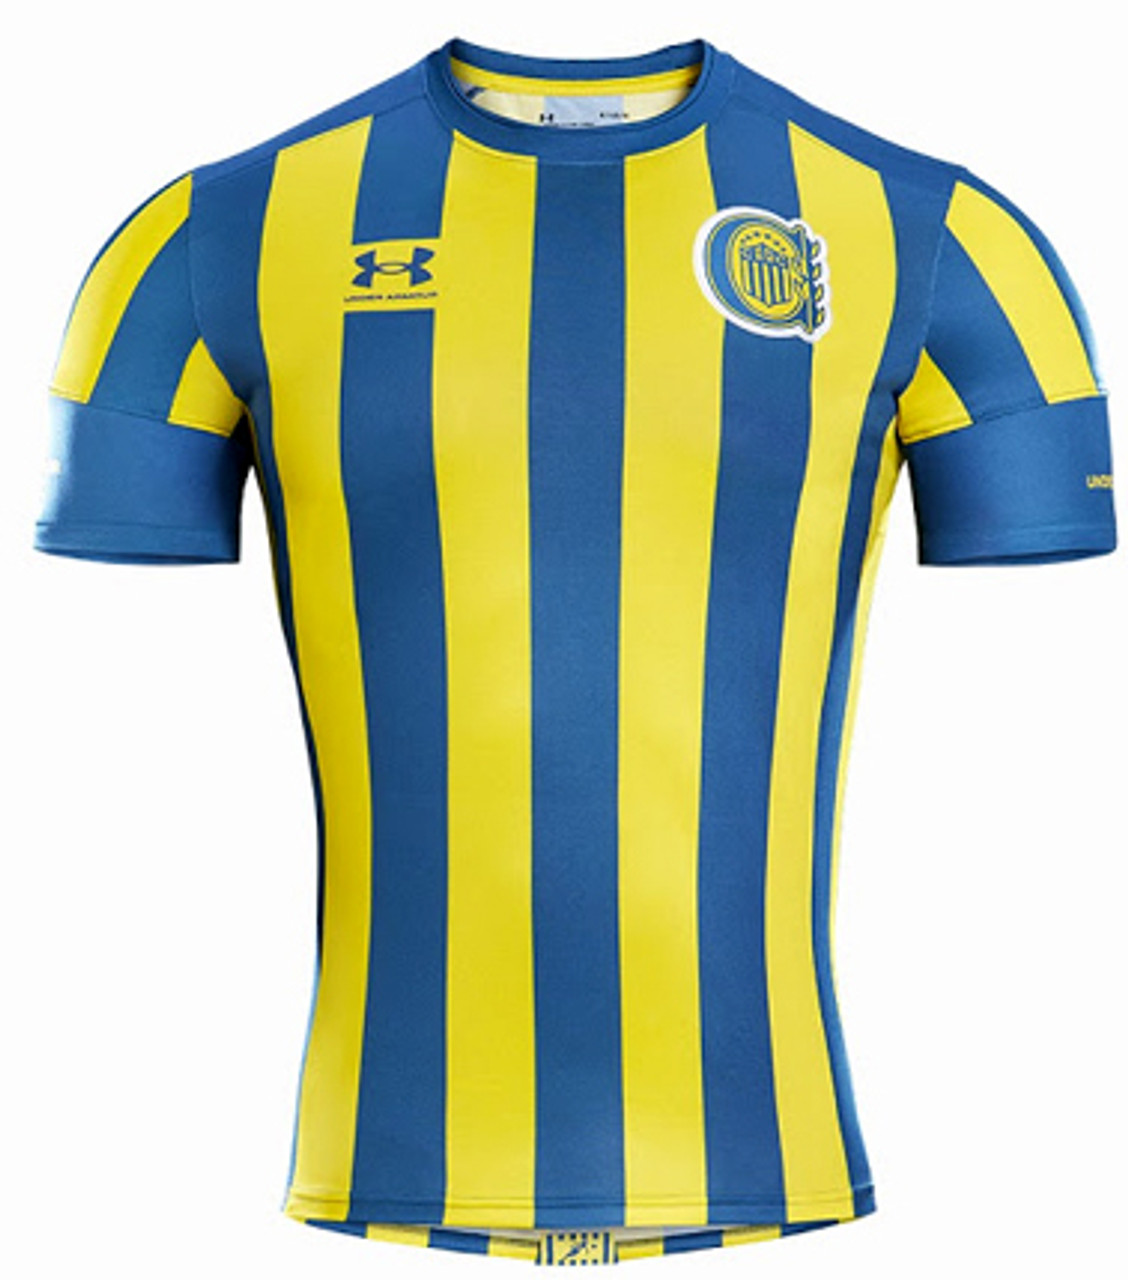 UNDER ARMOUR ROSARIO CENTRAL 2021 HOME JERSEY